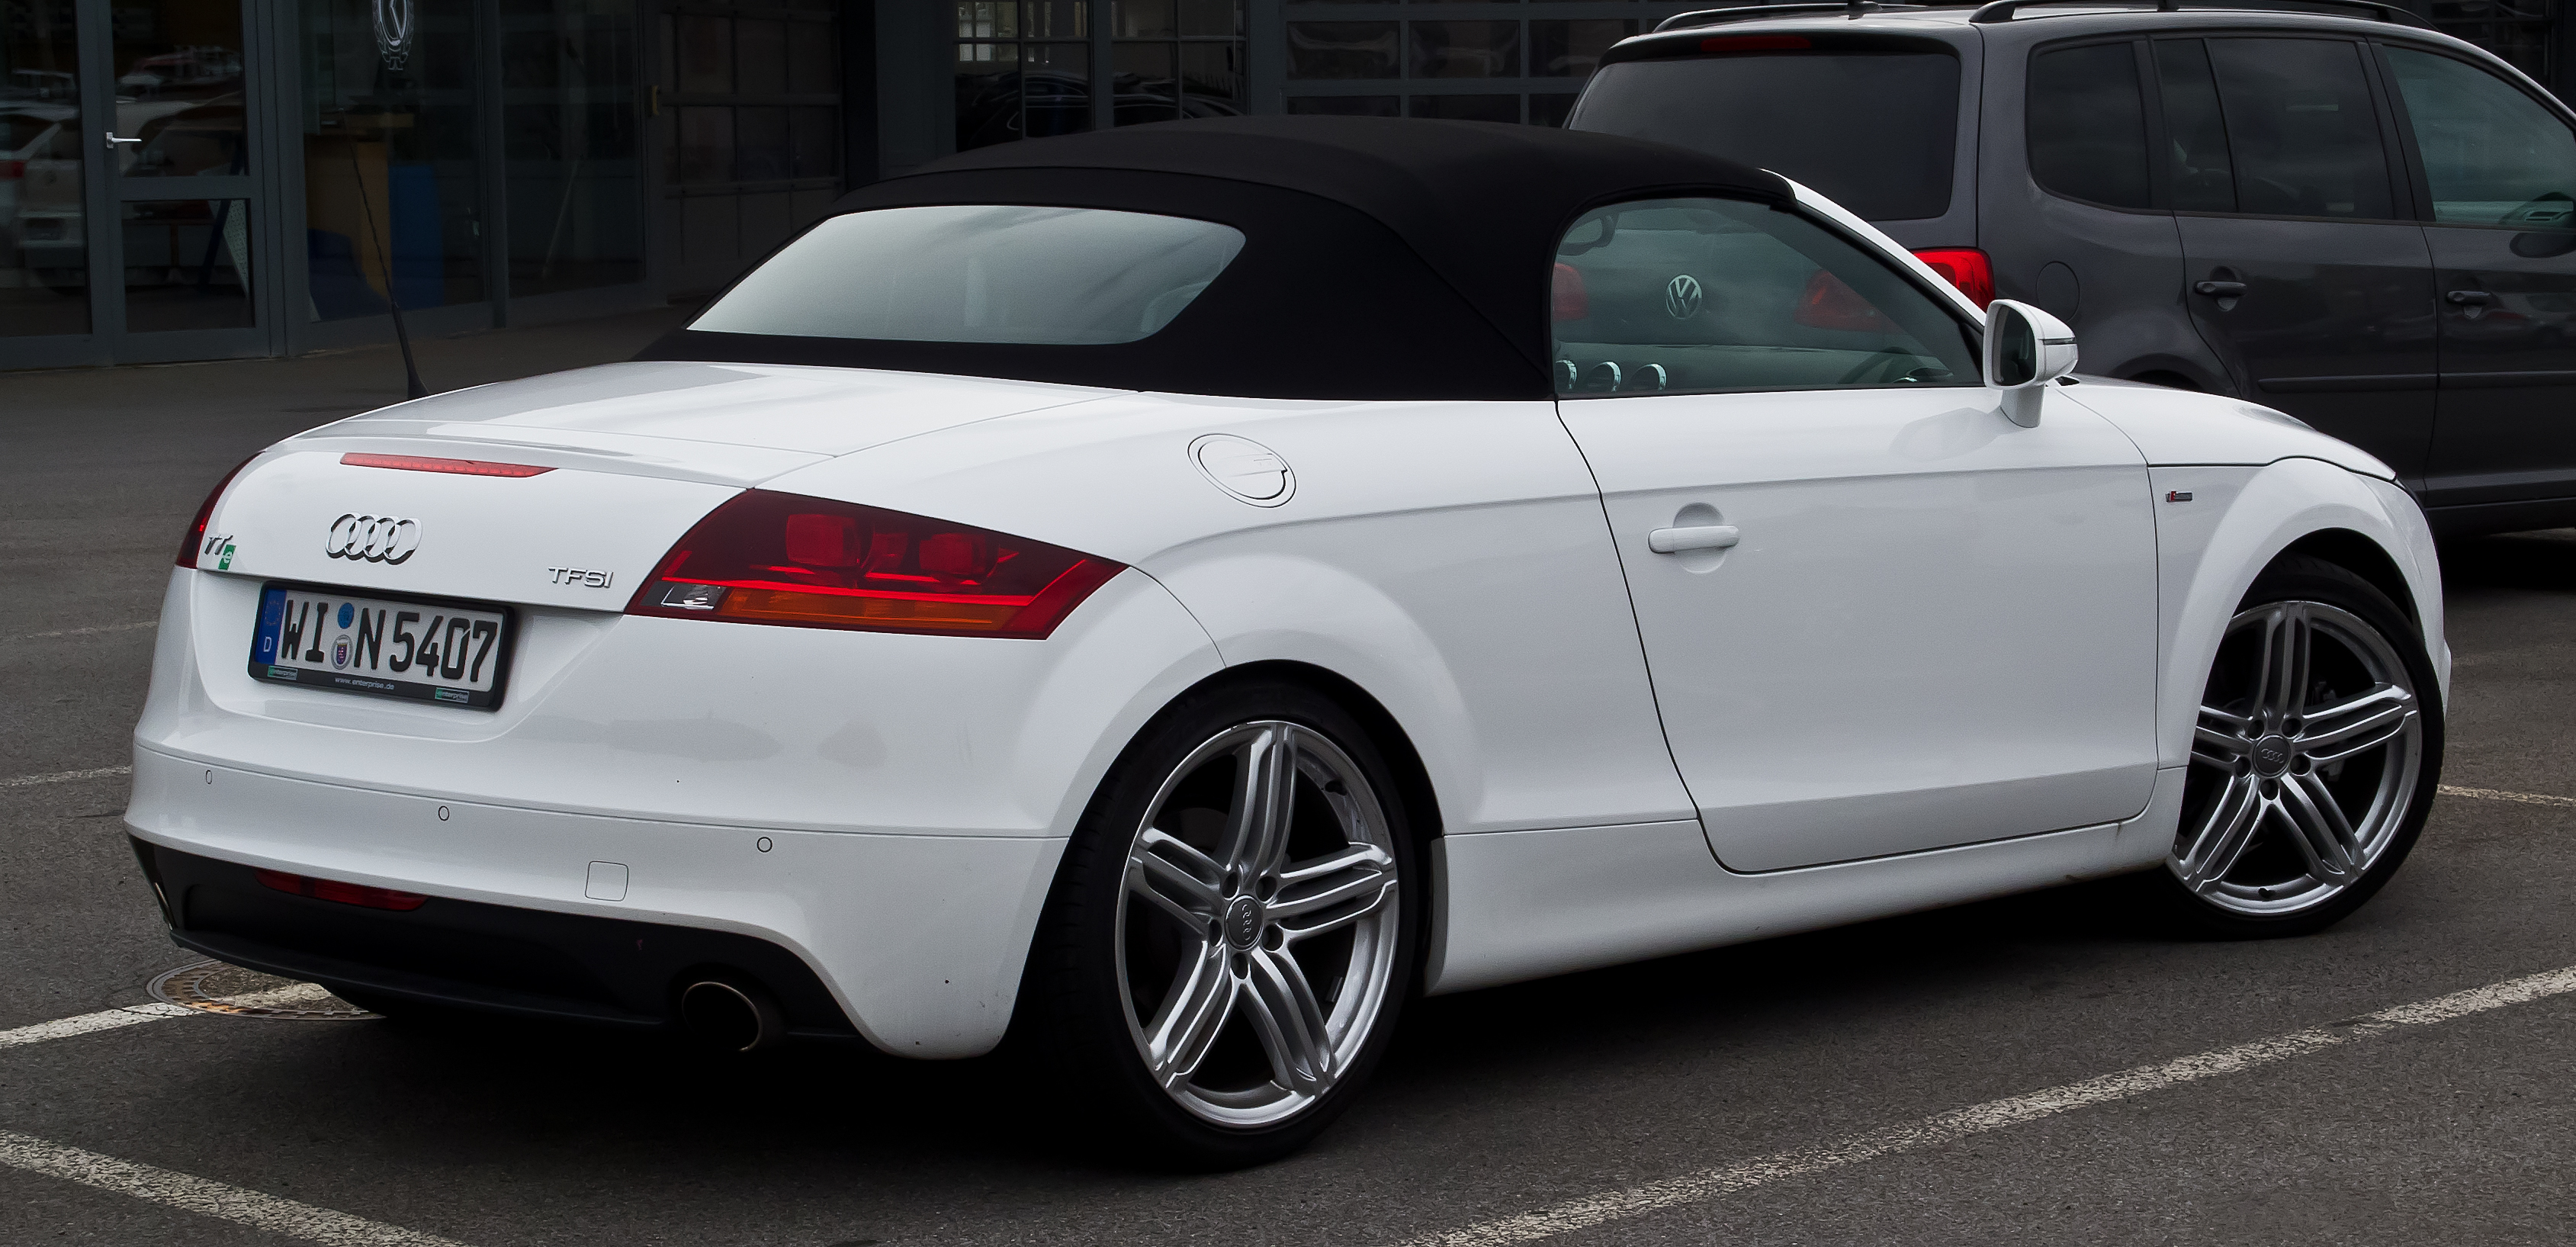 audi tt roadster 2 0 tfsi s line 8j facelift heckansicht 1 september 2013 m nster. Black Bedroom Furniture Sets. Home Design Ideas